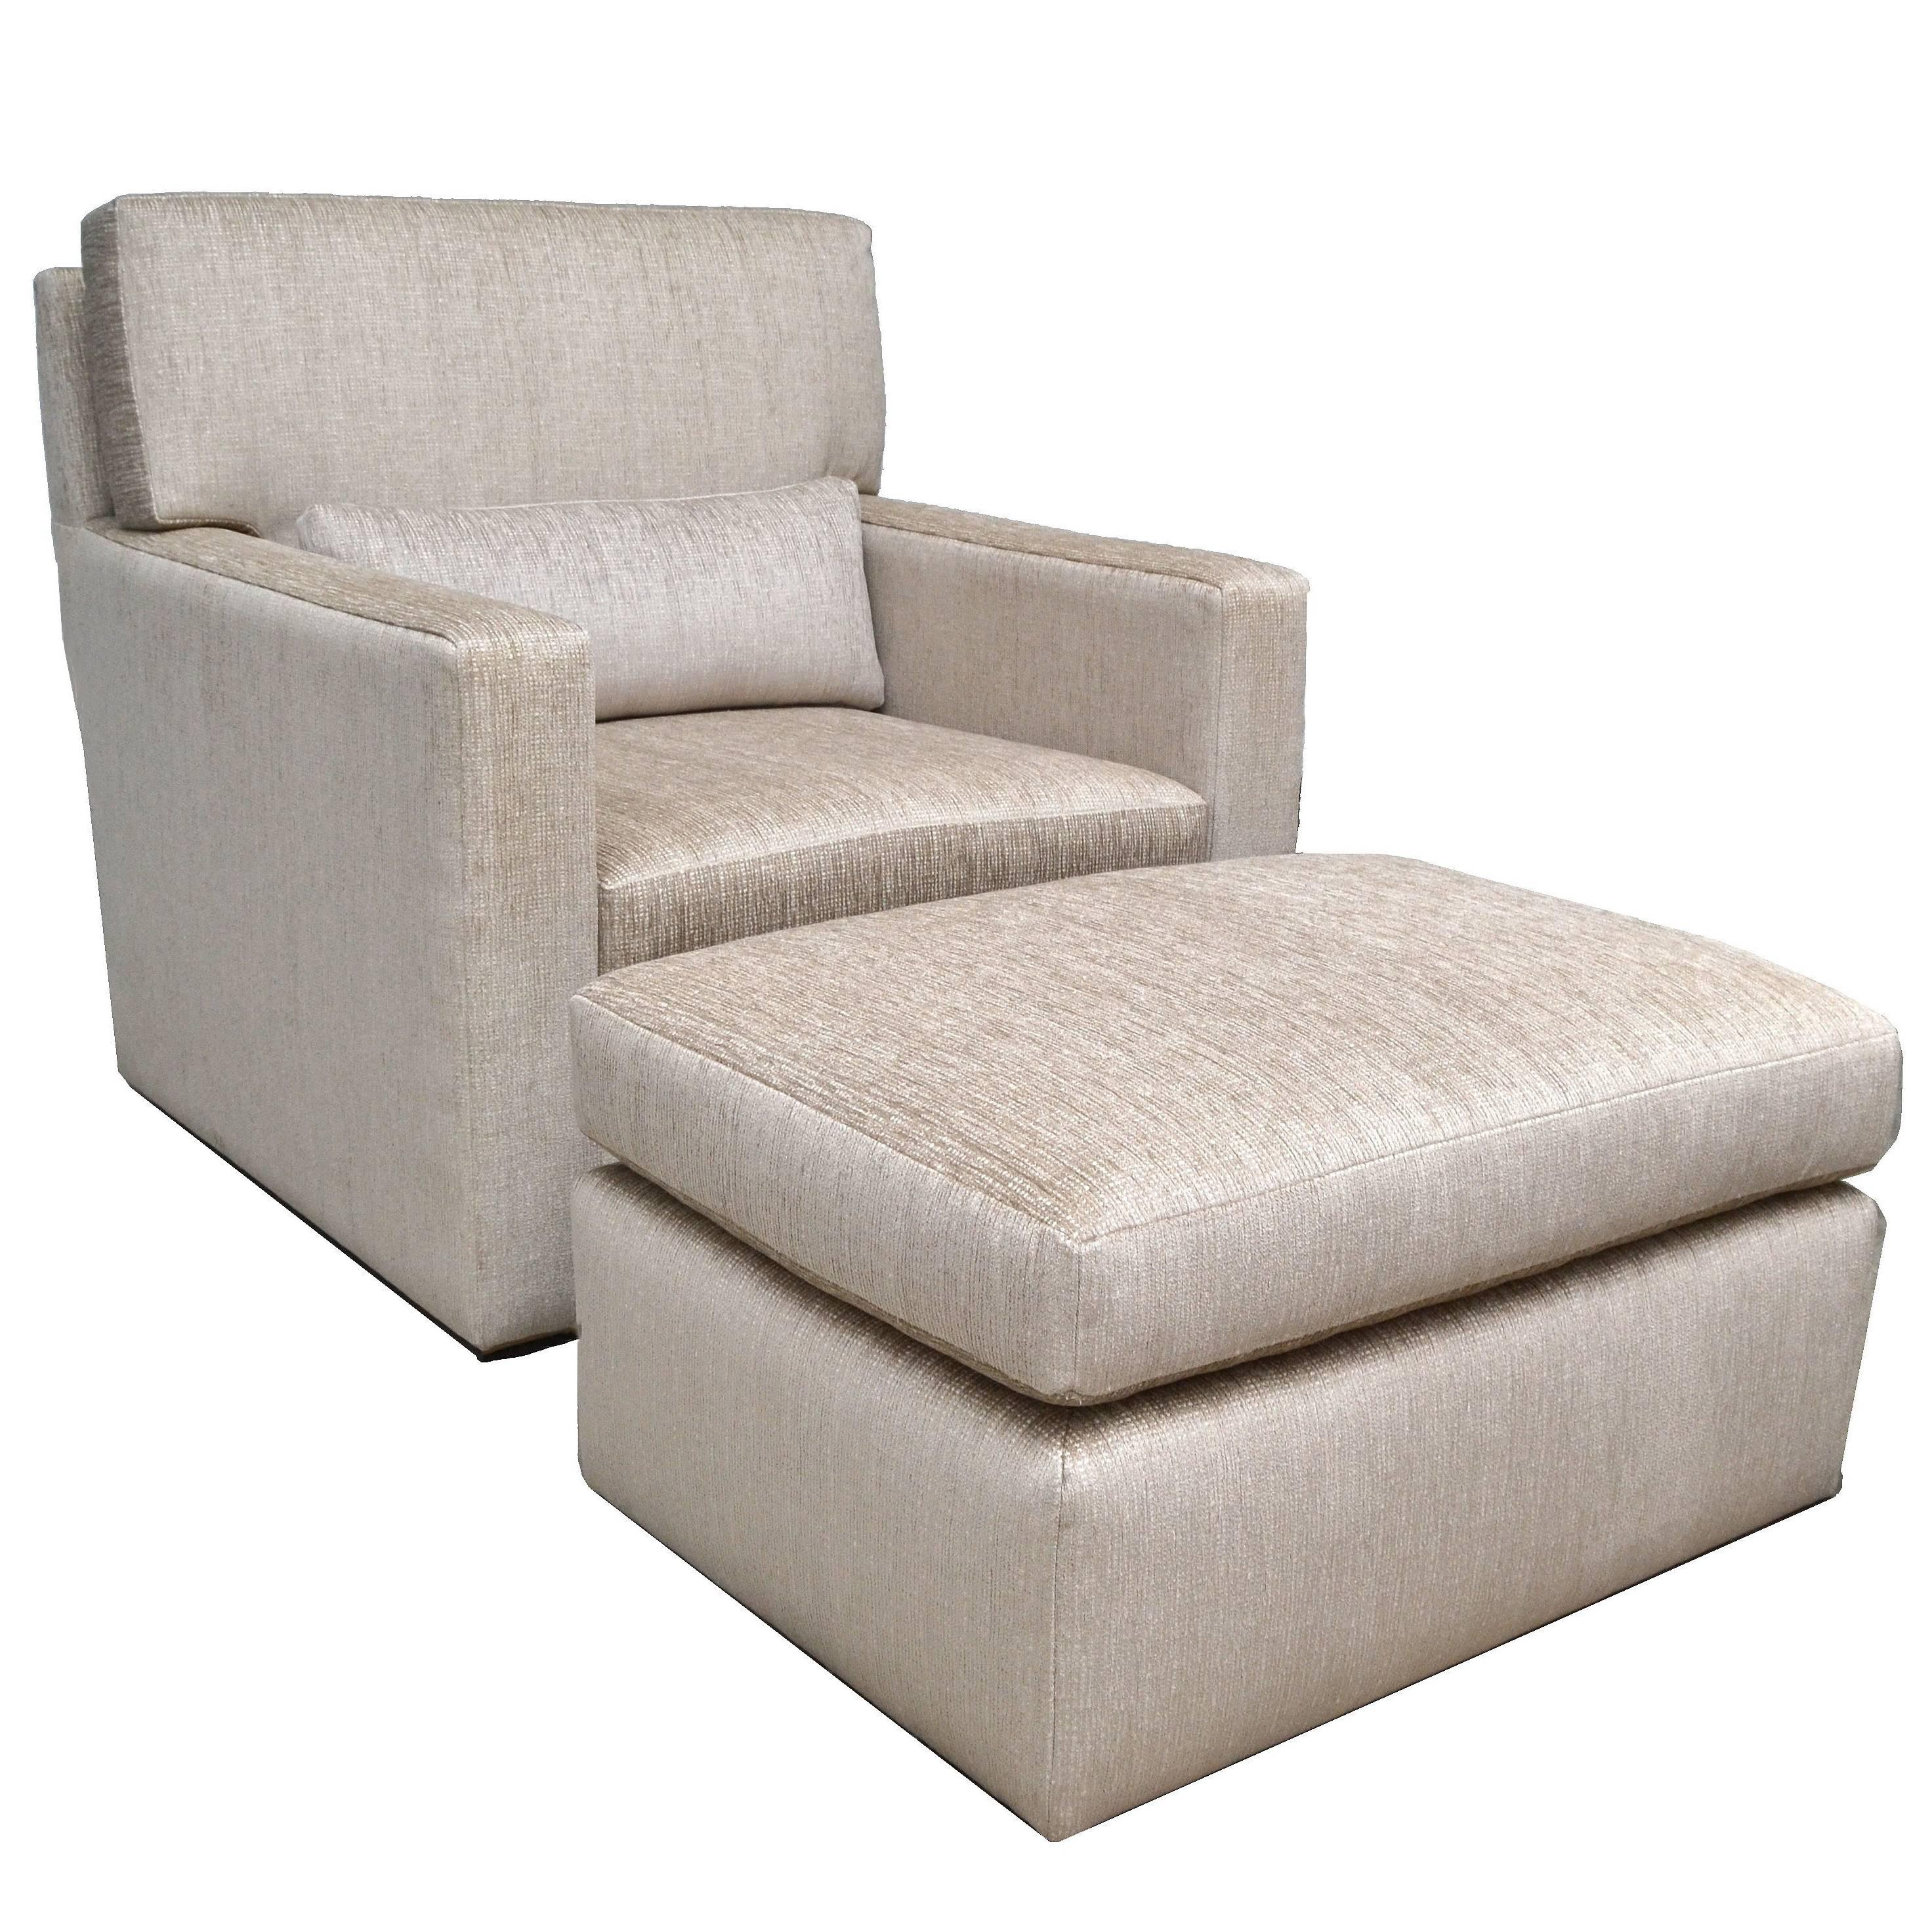 Contemporary Lounge Chair With Ottoman For Sale